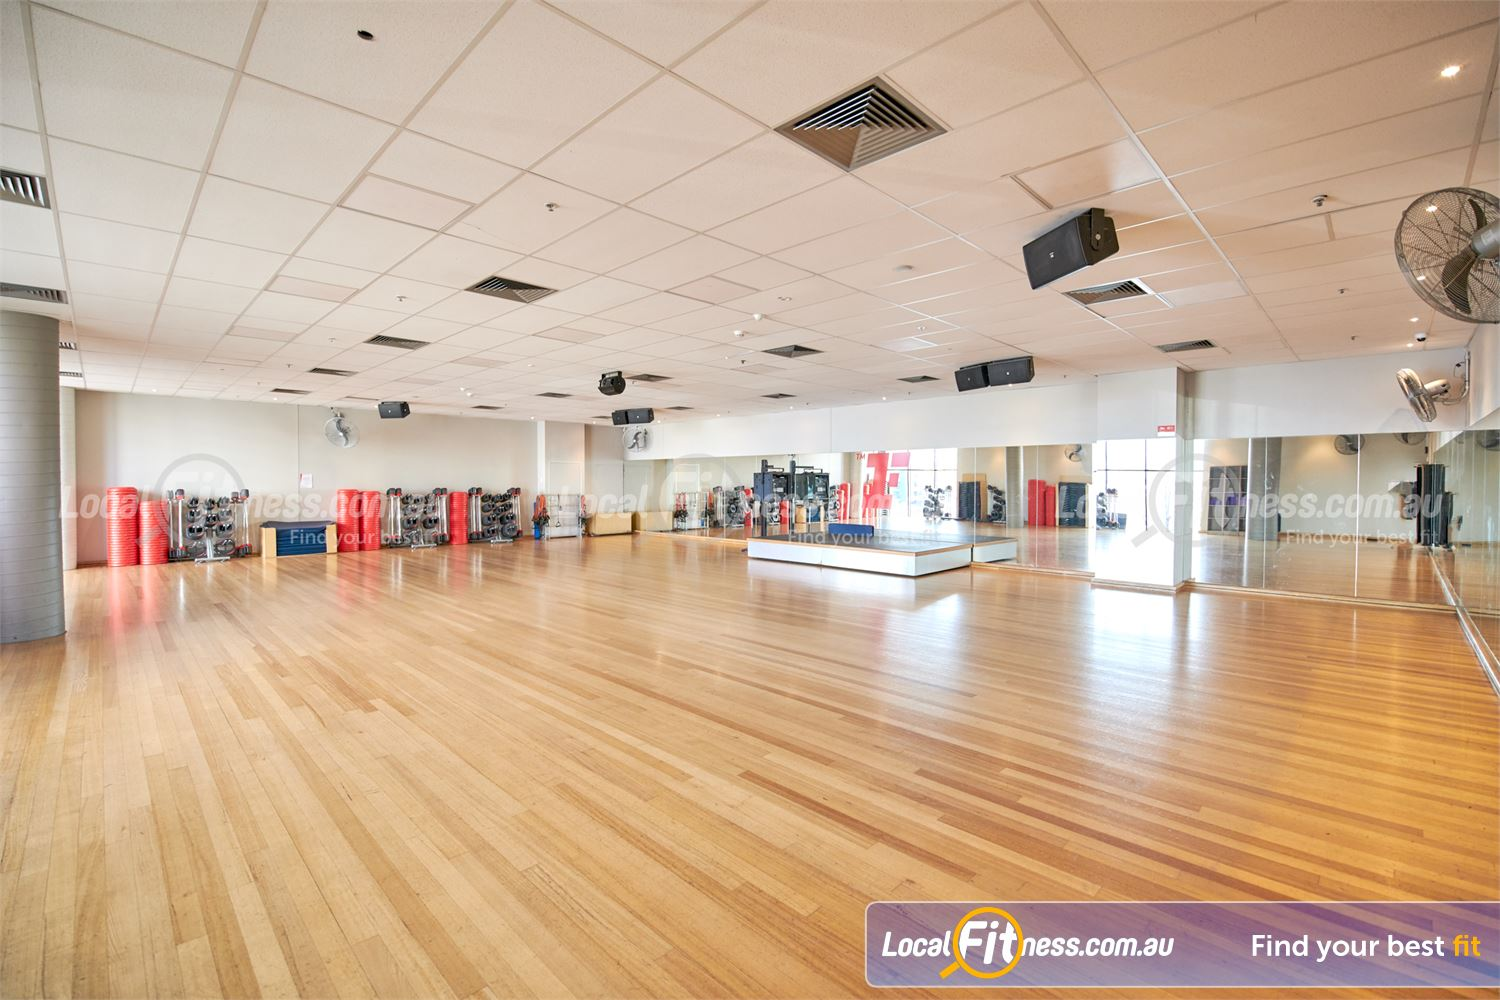 Fitness First Near Blackburn North Over 80 classes per week inc. Doncaster Yoga, Pilates, Zumba and more.